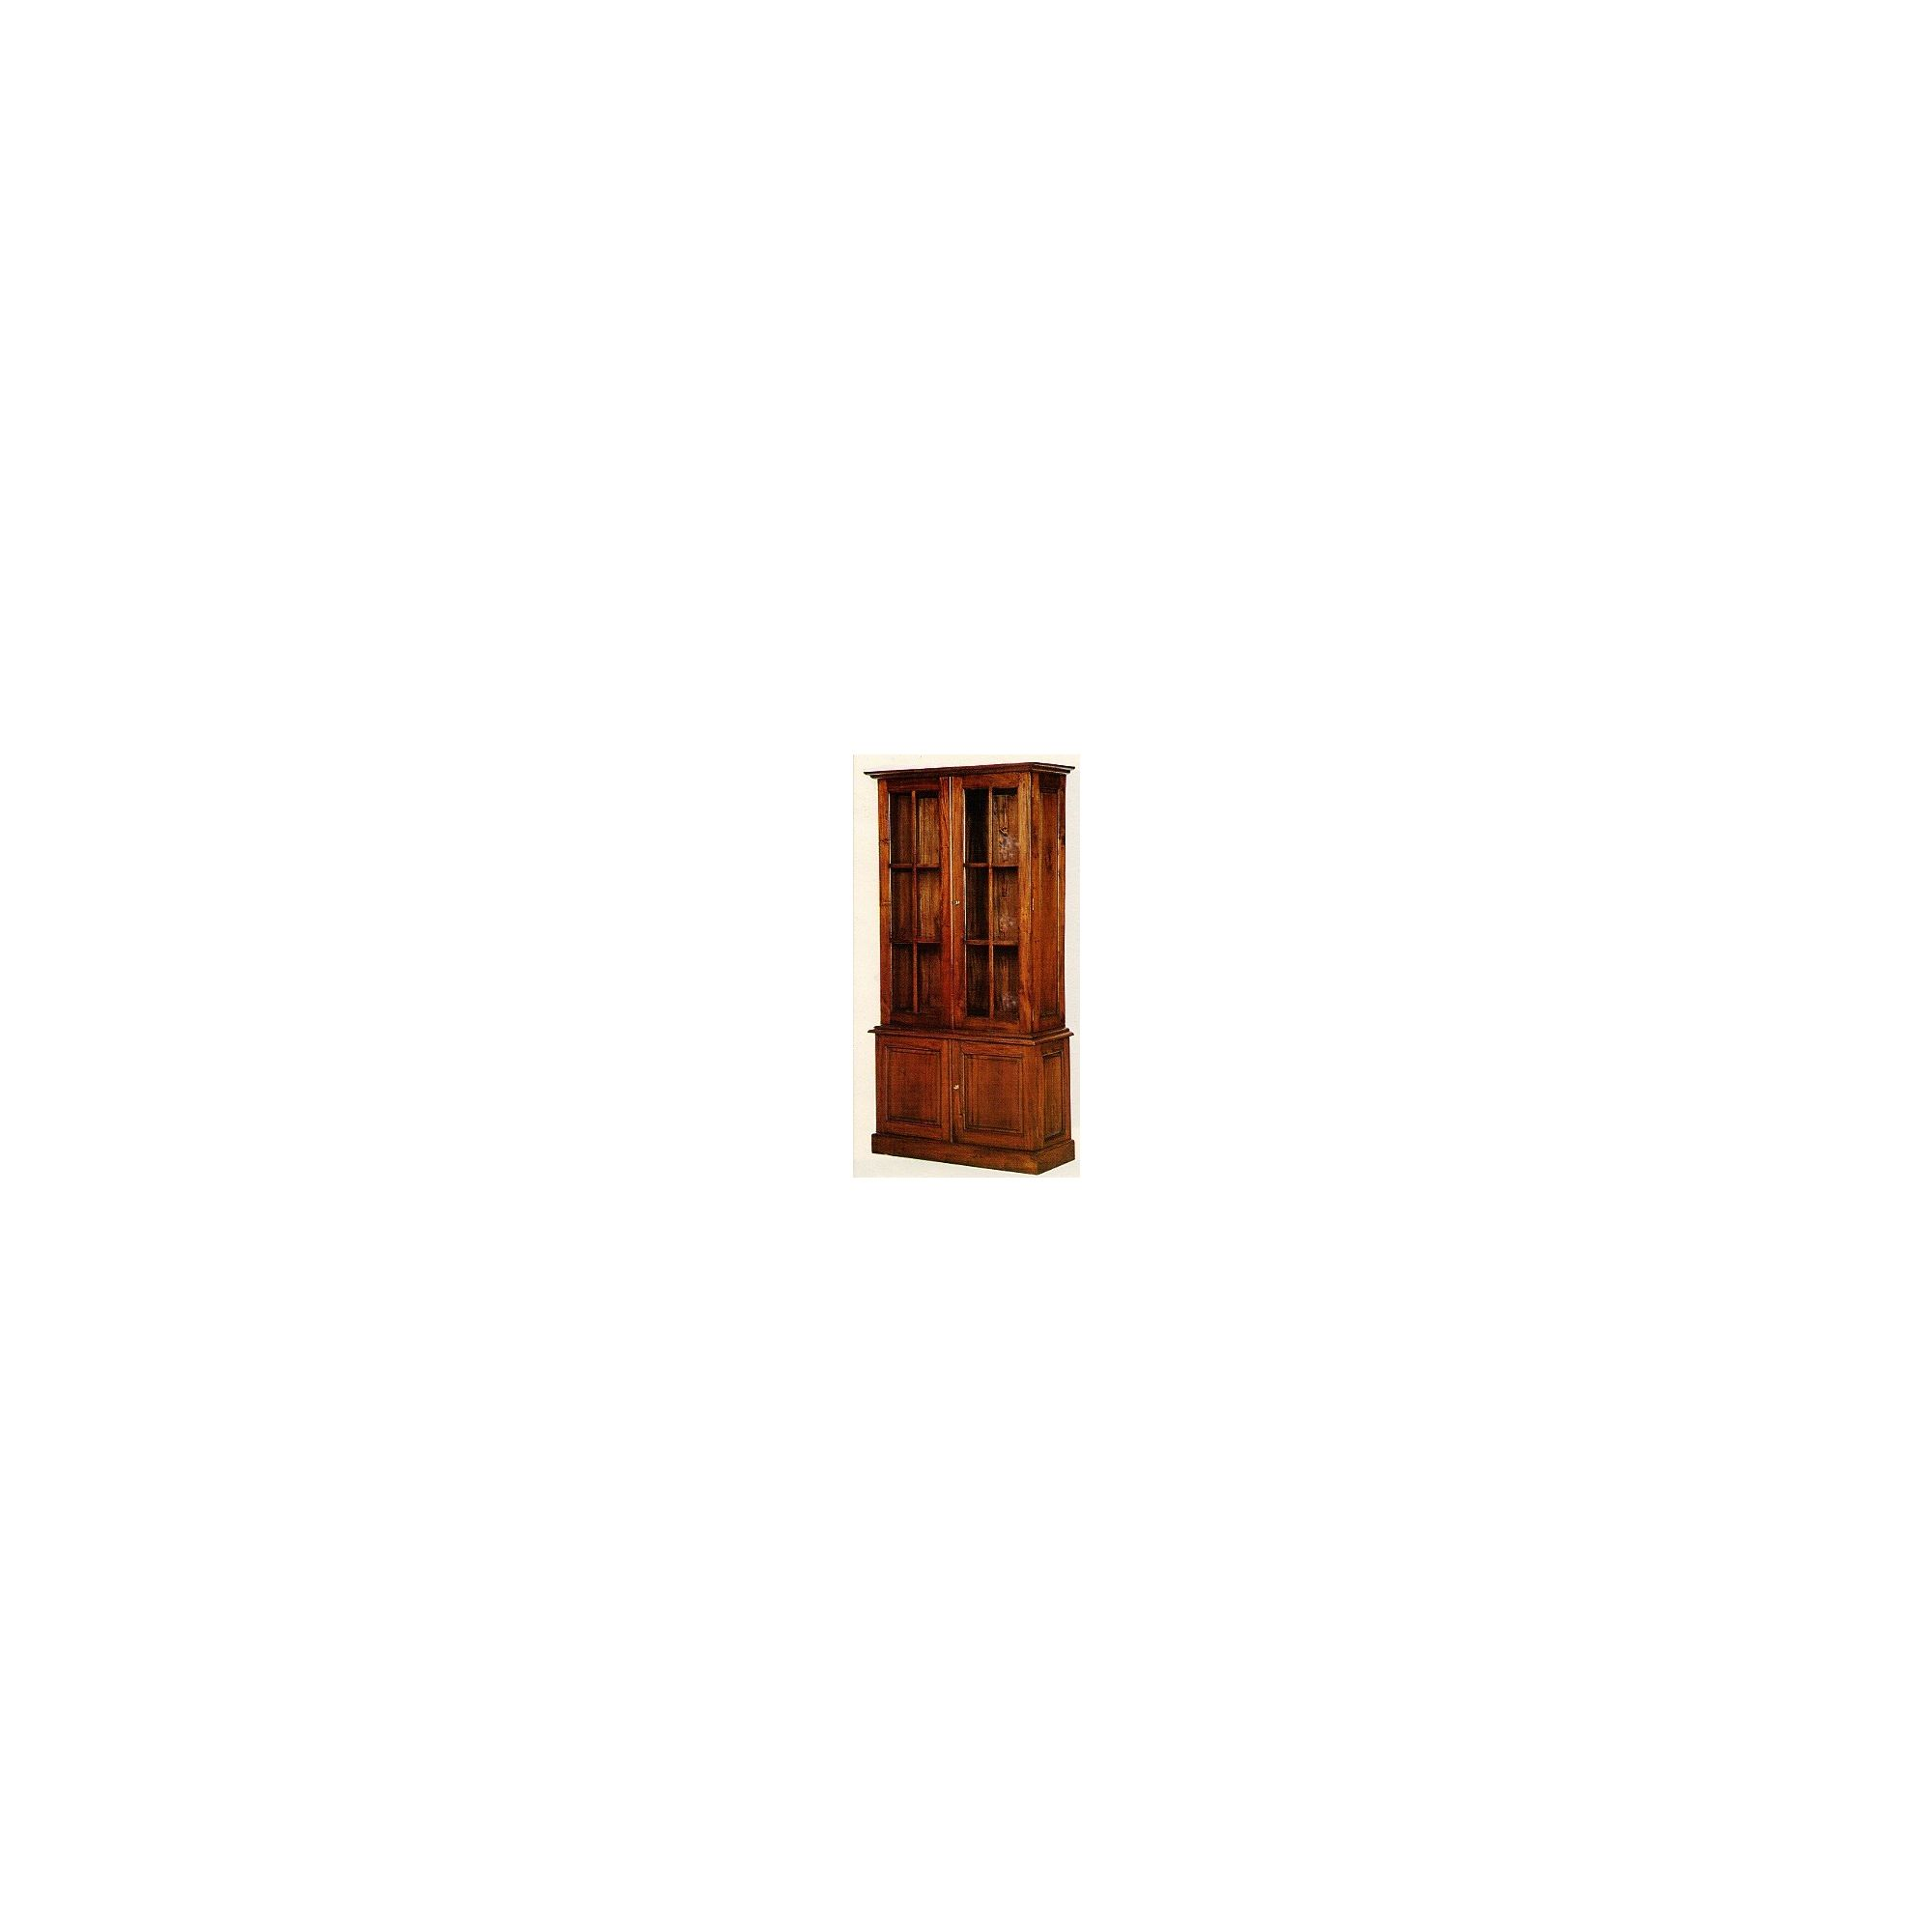 Anderson Bradshaw Victorian Tall Glazed Bookcase in Mahogany at Tesco Direct